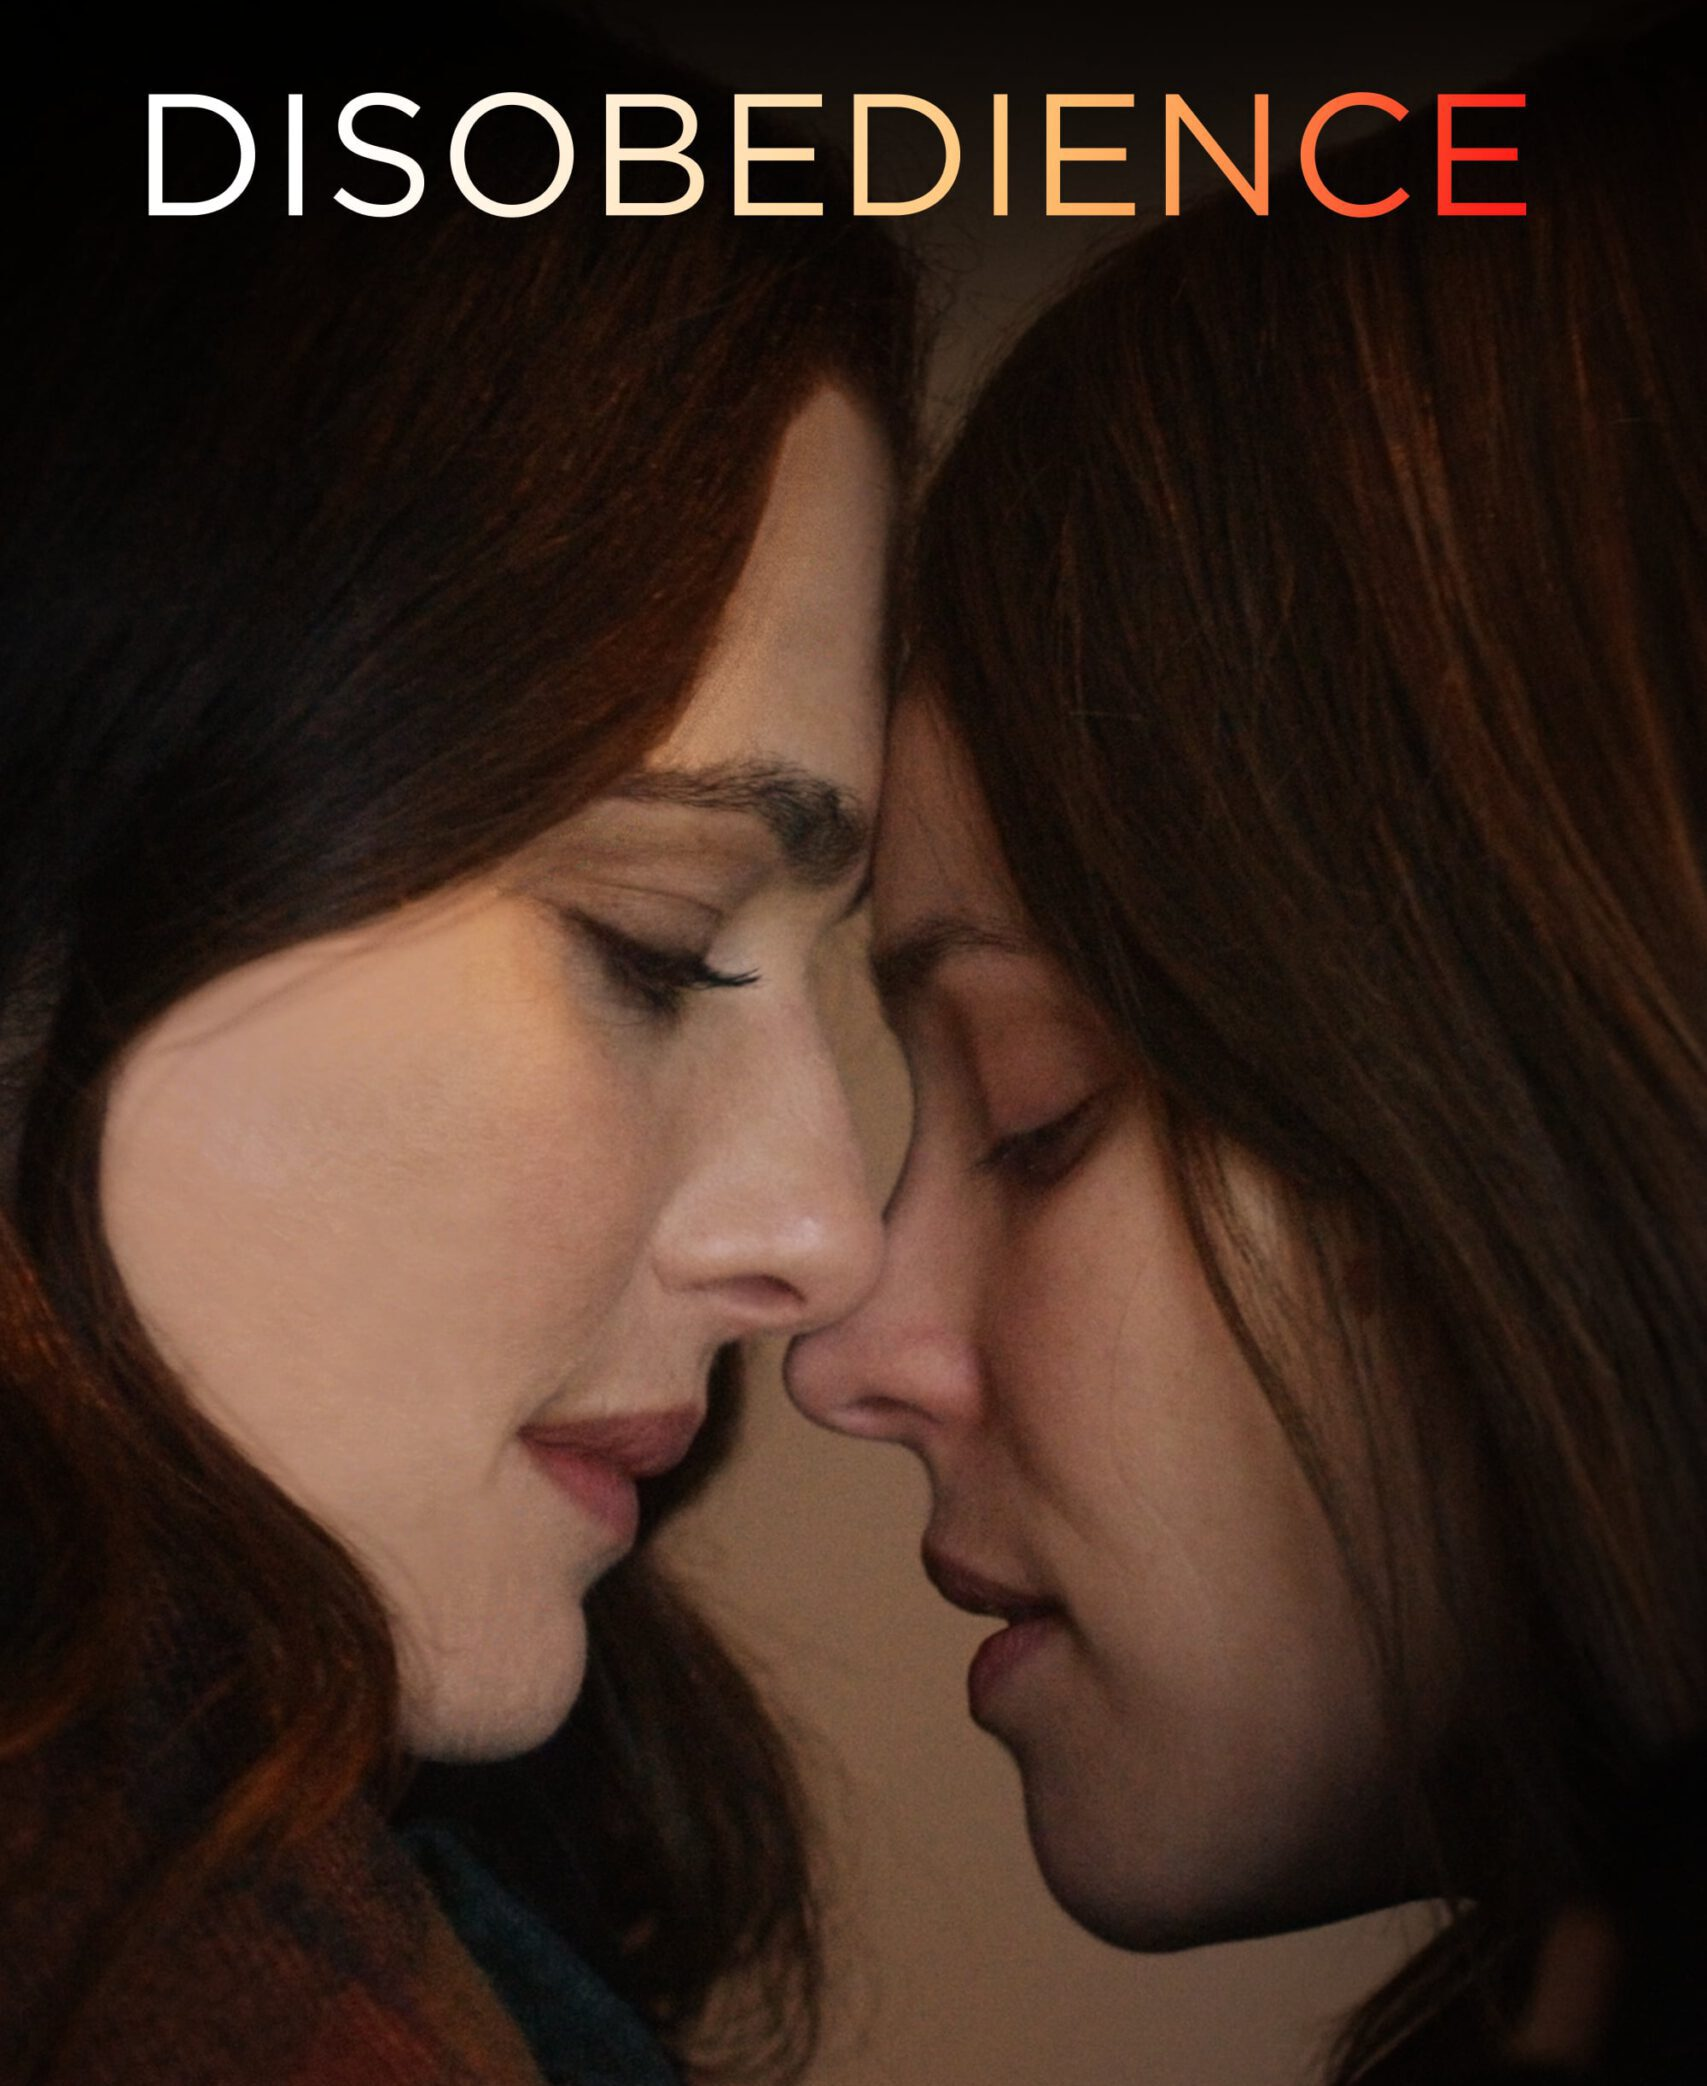 disobedience_icon